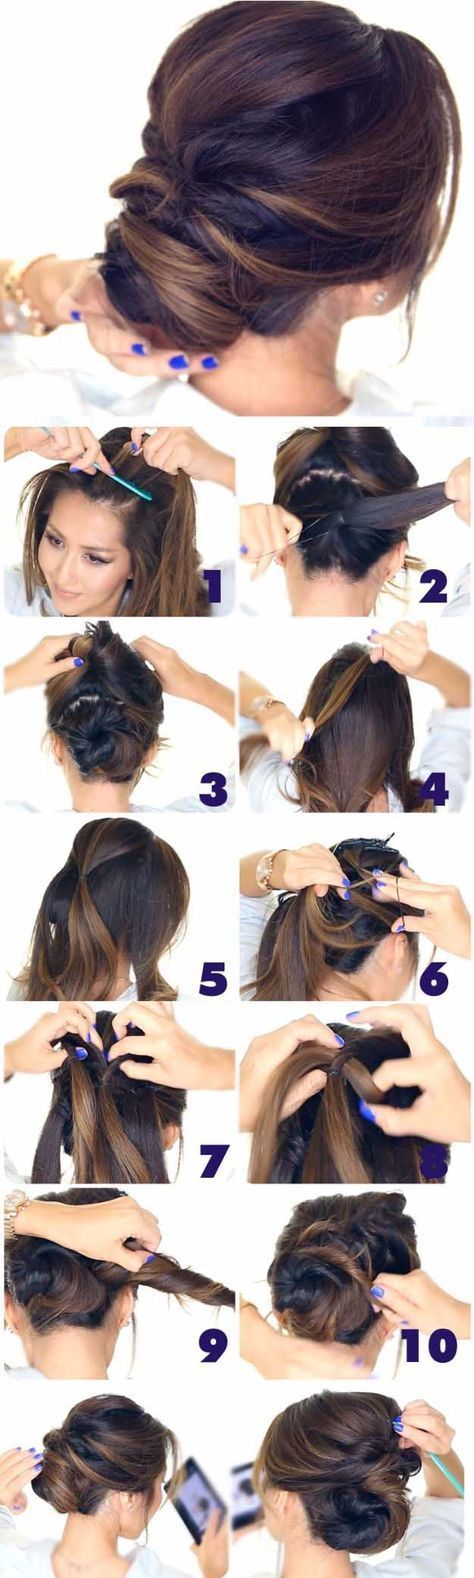 Best Hairstyles for Brides - 5 Minute Elegant Chignon- Amazing Hair Styles and Looks for Half Up Medium Styles, Updo With Long Hair, Short Curls, Vintage Looks with Veil, Headpieces, or With Tiara - Wedding Looks for Girls With Round Faces - Awesome Simple Bridal Style With Headband or Elegant Braided Up Dos - thegoddess.com/hairstyles-for-brides #weddinghairstyleswithveil